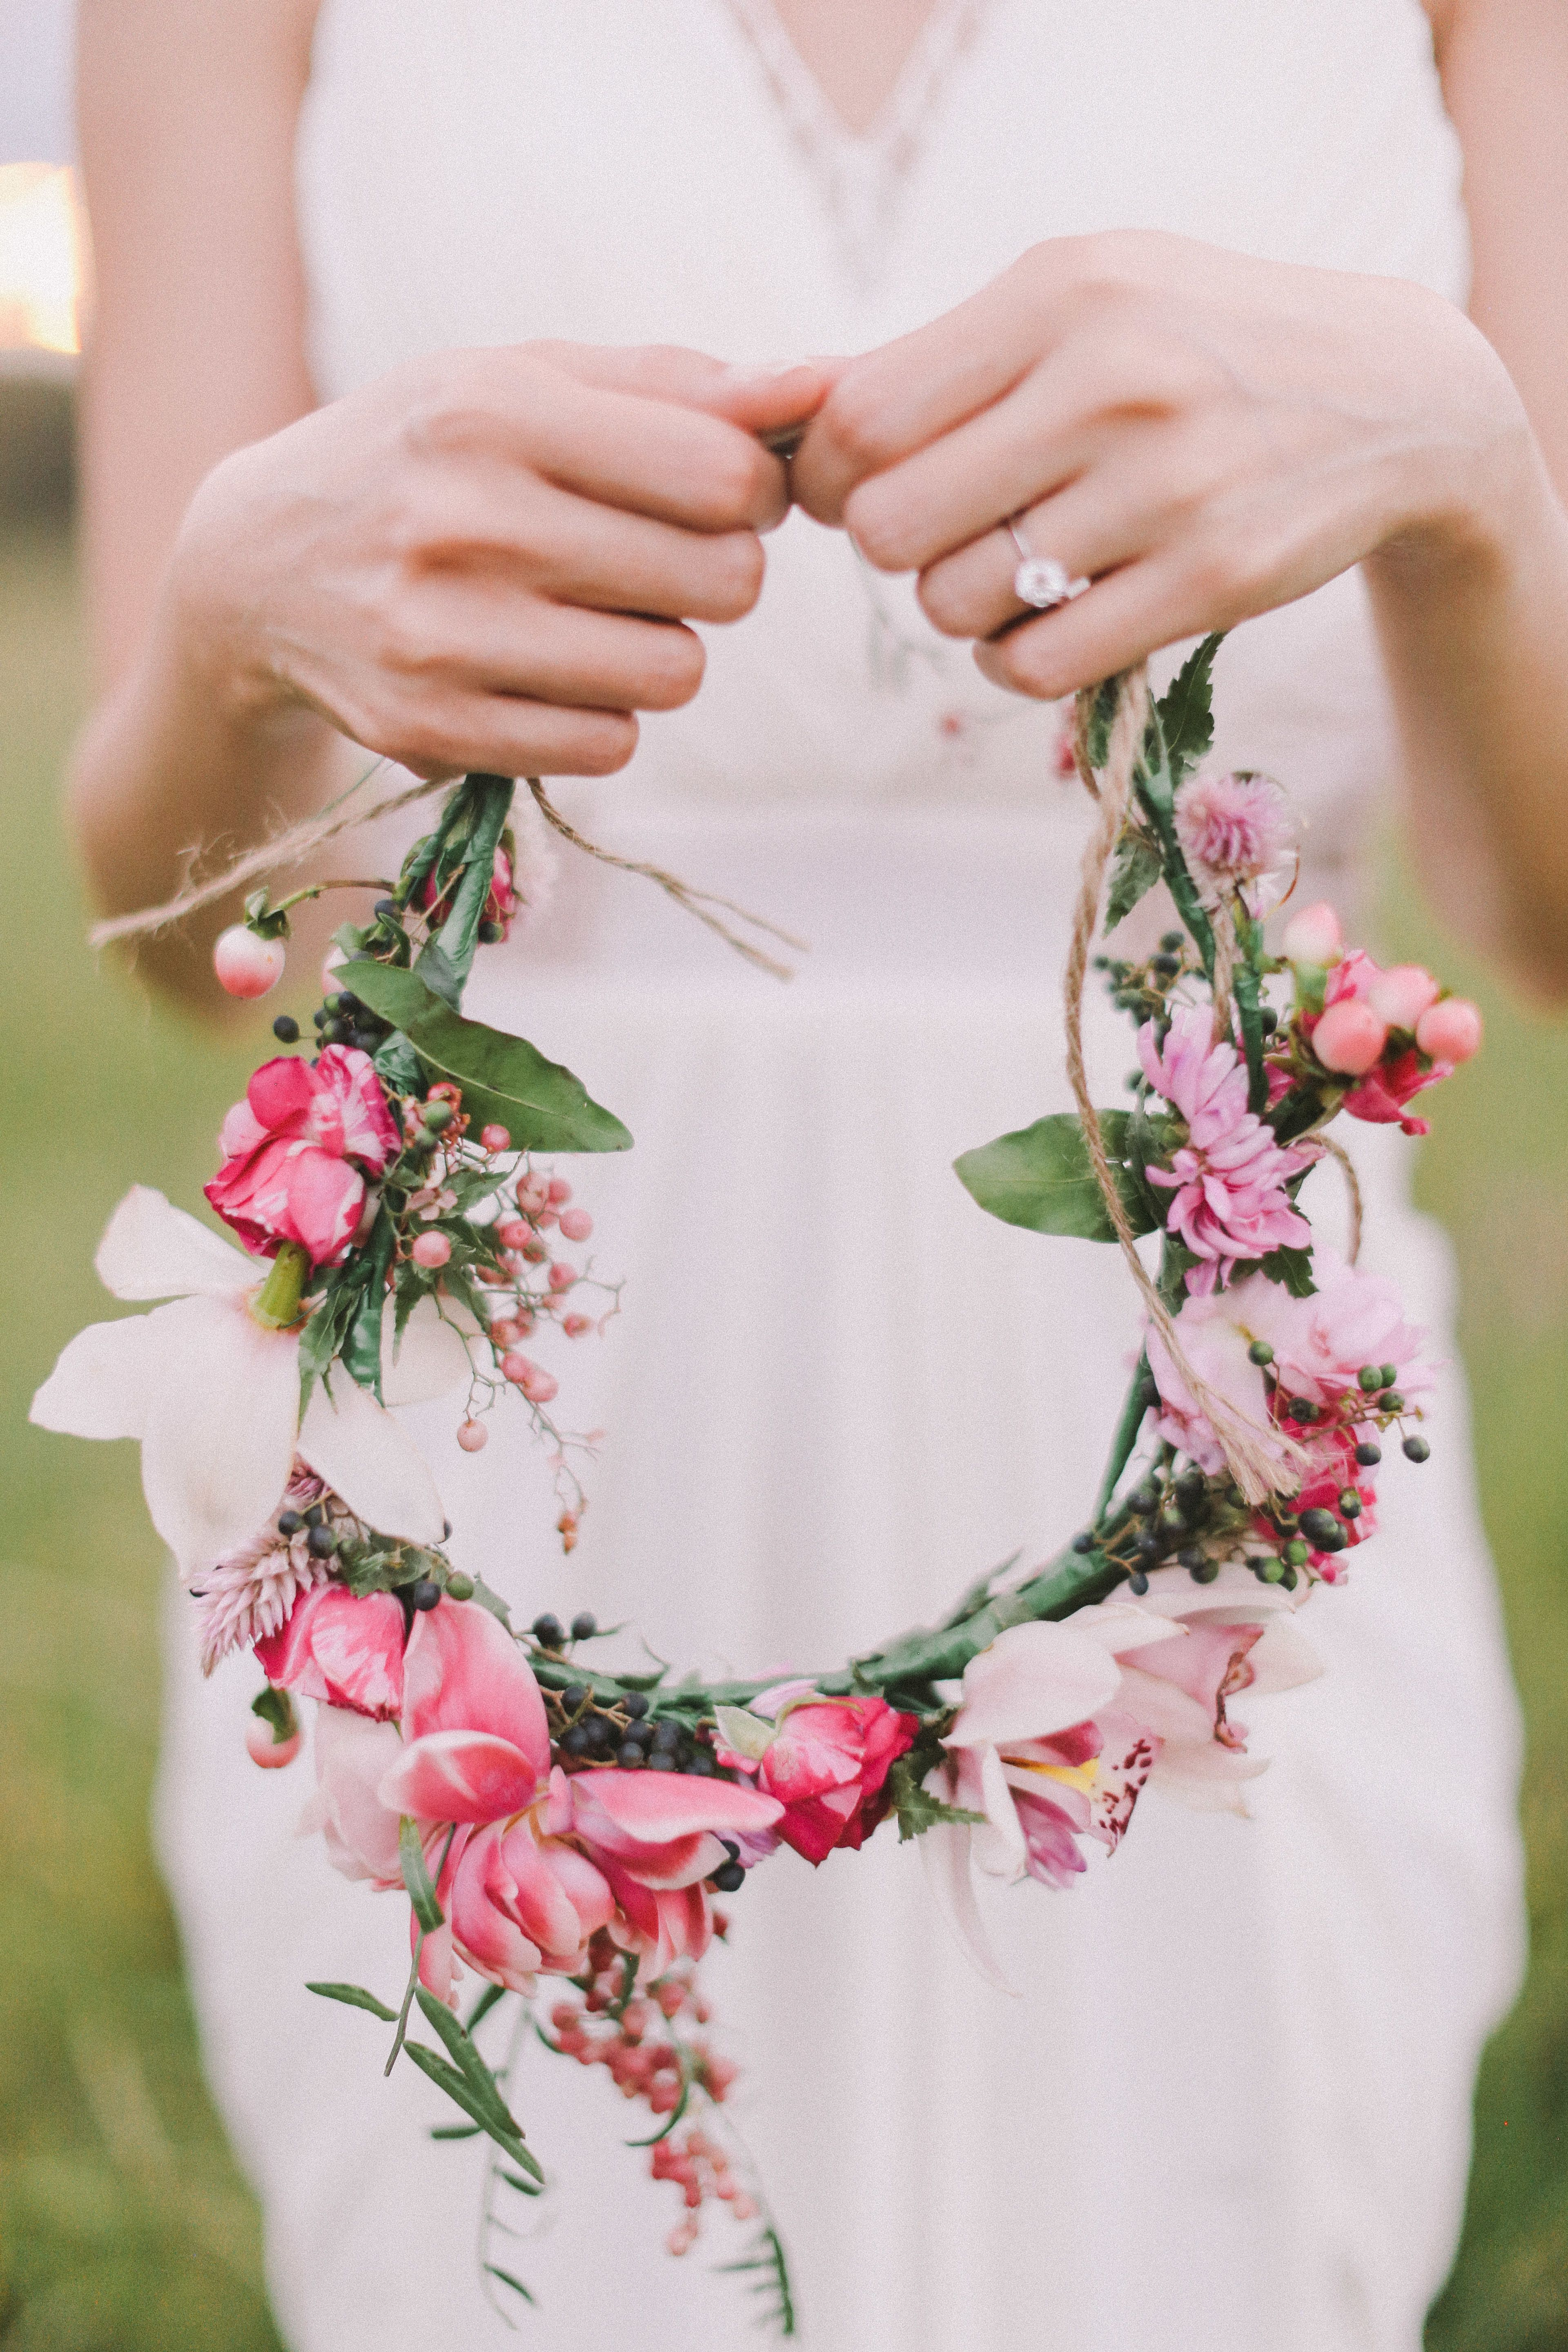 Celebrate spring with these major floral moments wedding flowers pretty flower crown since its now officially spring down under yay that means its officially time to celebrate the season and what sings of spring izmirmasajfo